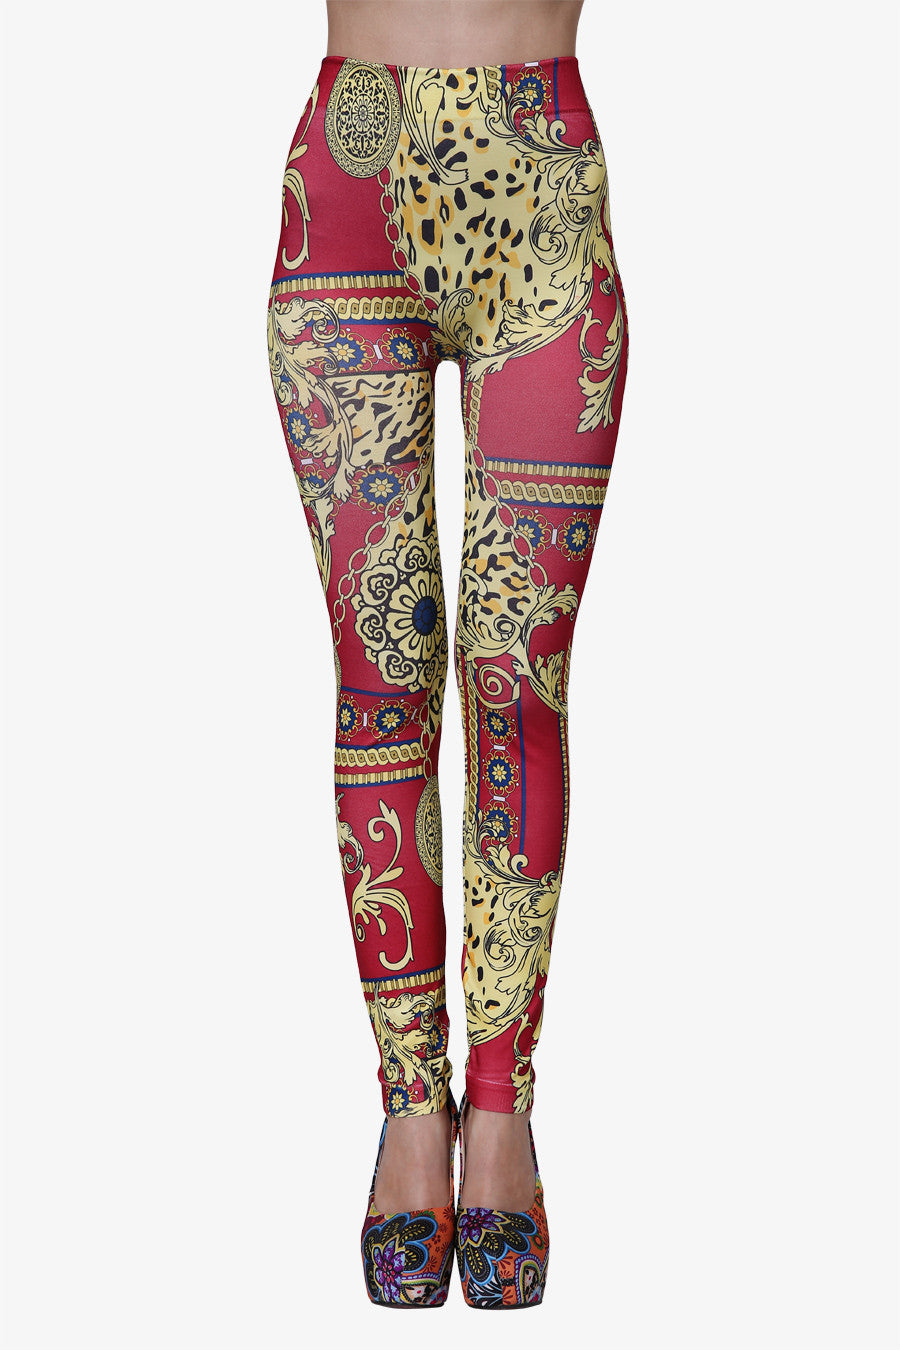 Totem Pole Leggings In Red